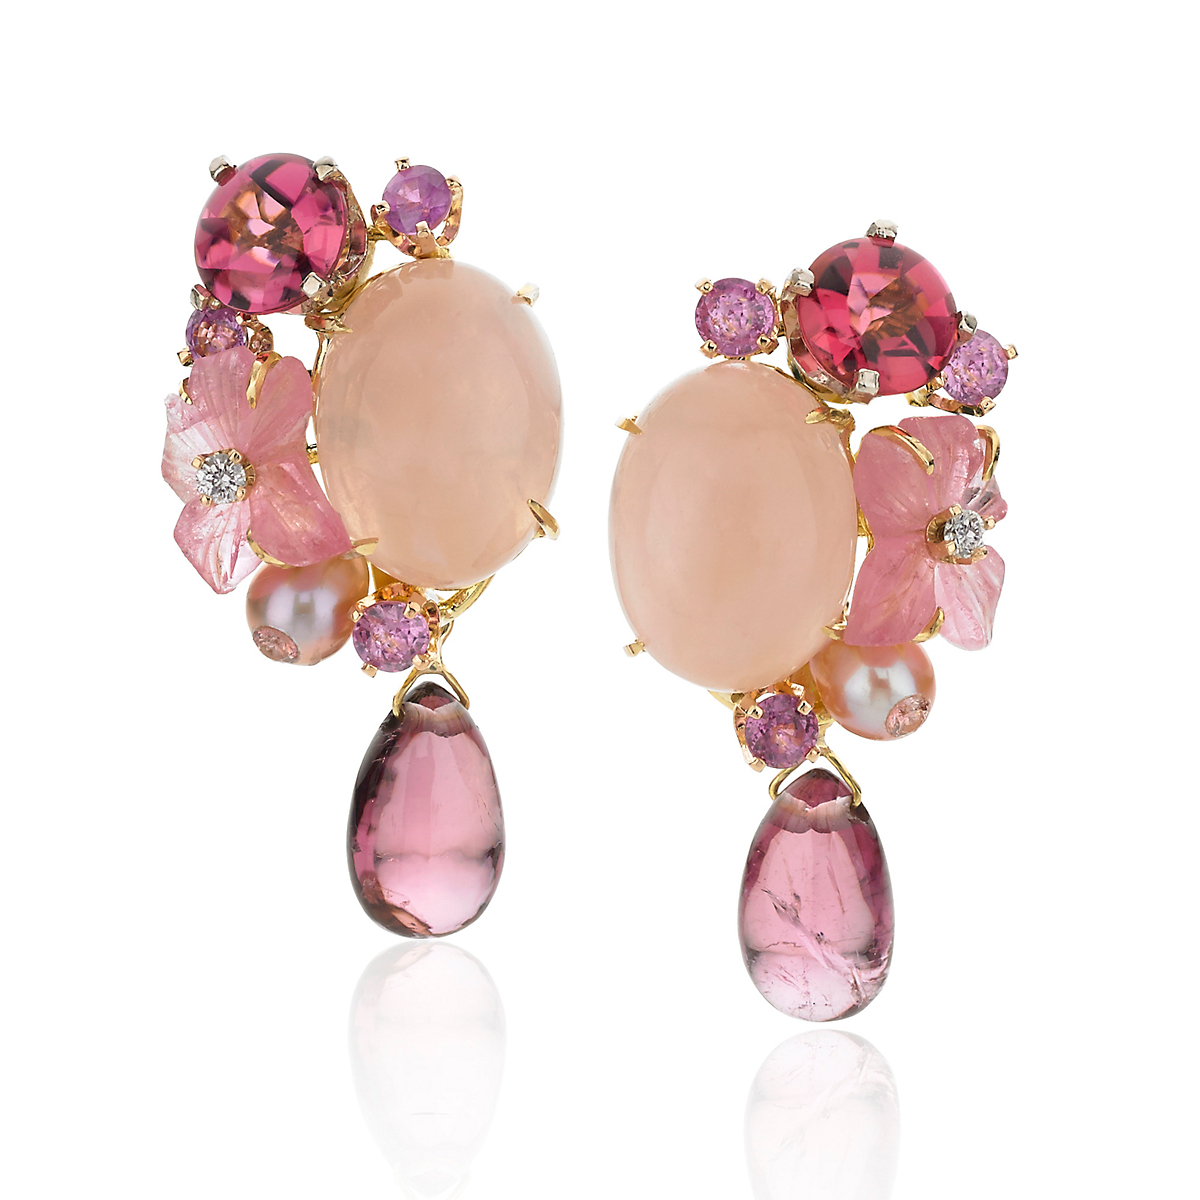 Russell Trusso Rose Quartz & Tourmaline Drop Earrings